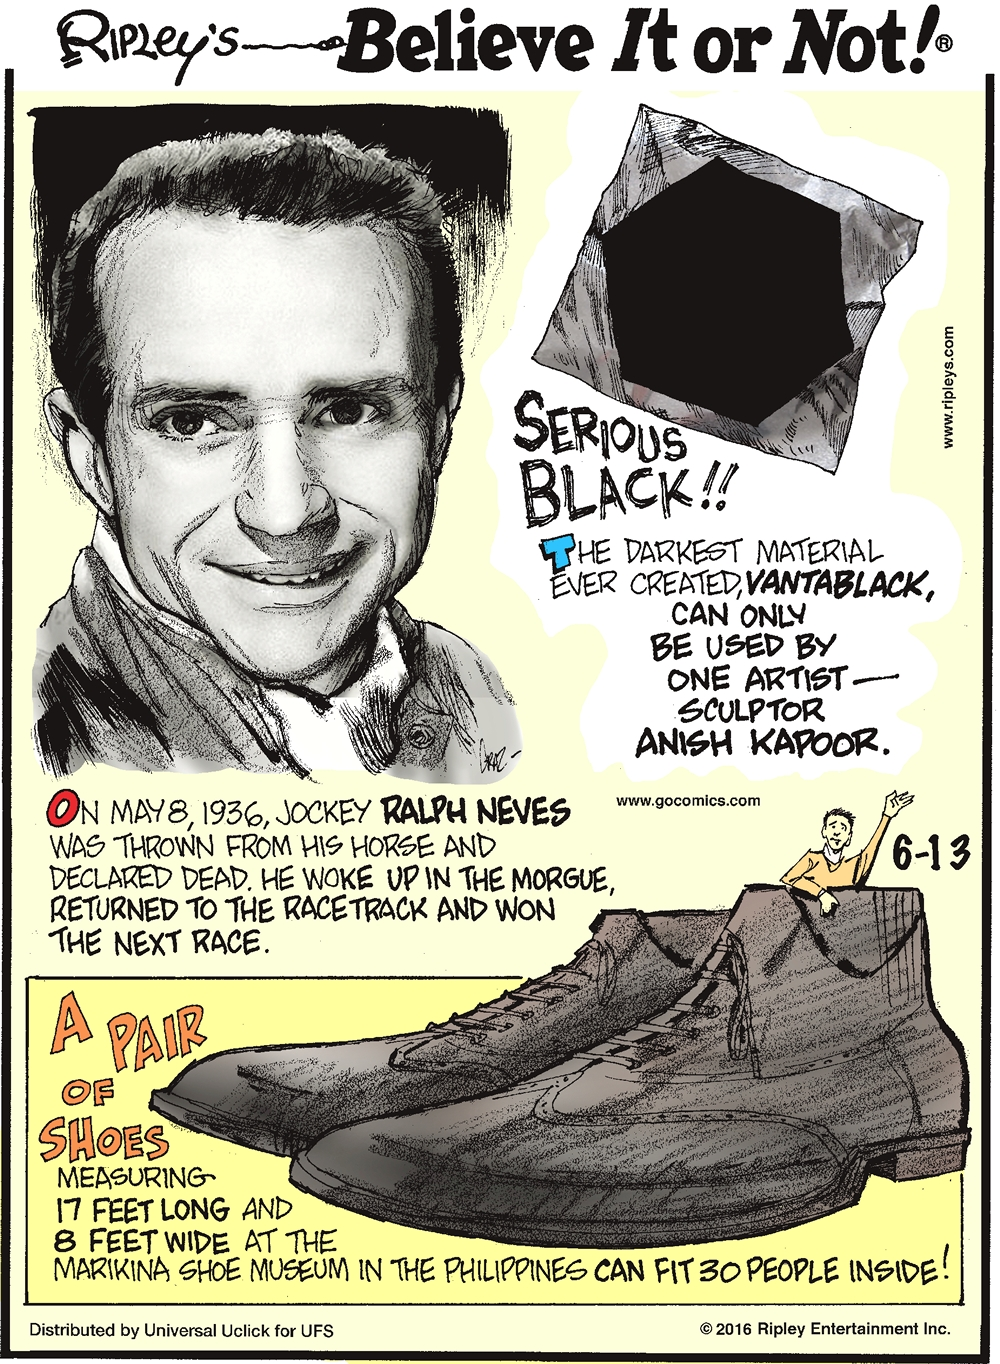 On May 8, 1936, jockey Ralph Neves was thrown from his horse and declared dead. He woke up in the morgue, returned to the racetrack and won the next race. -------------------- Serious black!! The darkest material ever created, vantablack, can only be used by one artist—sculptor Anish Kapoor. -------------------- A pair of shoes measuring 17 feet long and 8 feet wide at the Marikina Shoe Museum in the Philippines can fit 30 people inside!